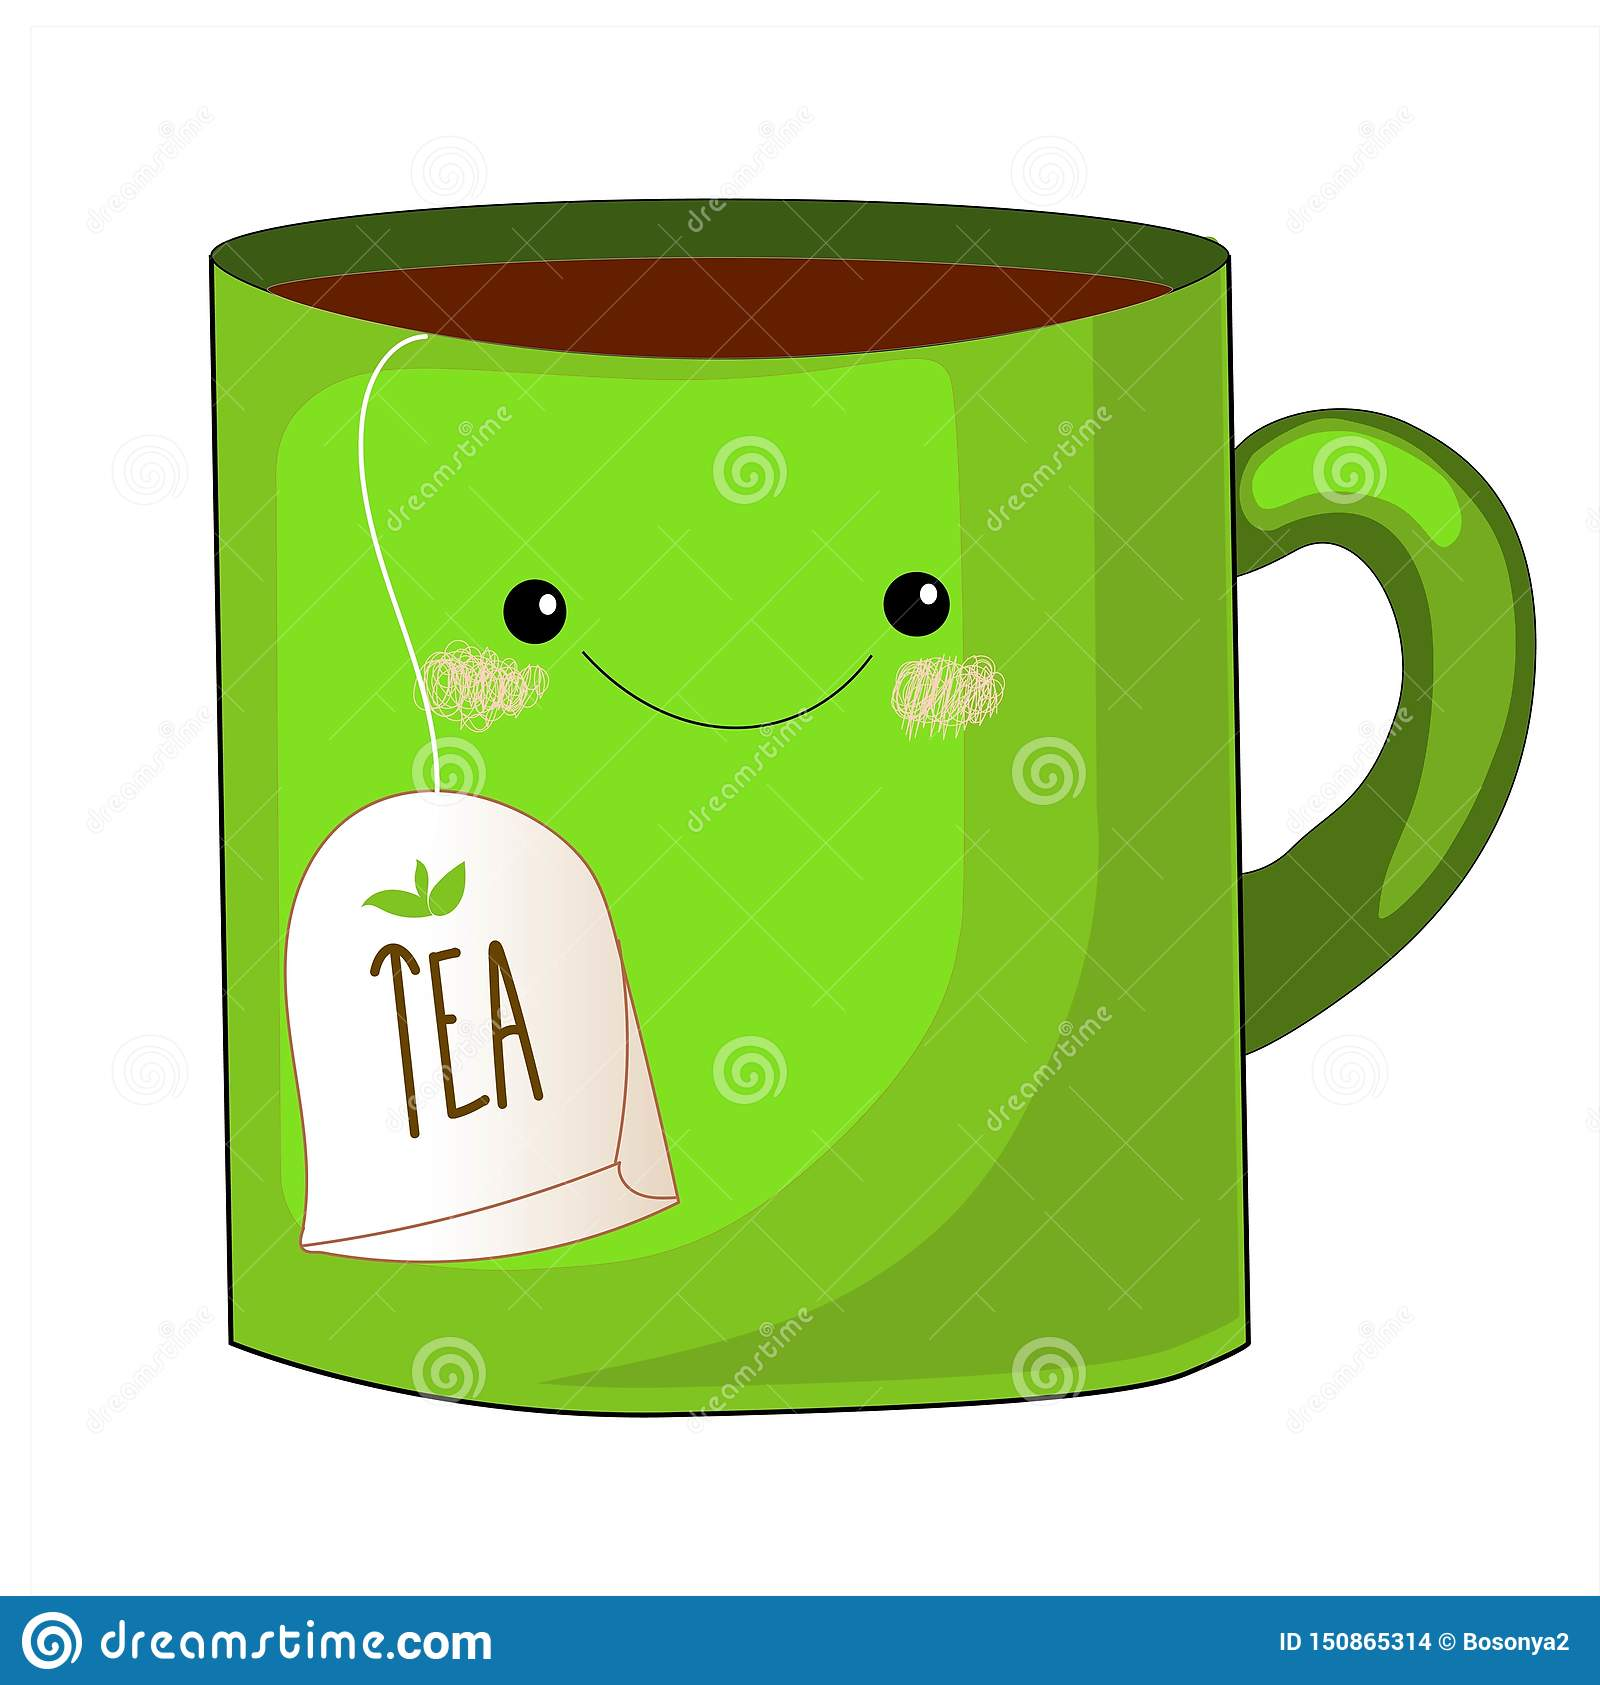 Cute tea cup character.Sweet teabag with cute faces. Emoji doodle objects.Cute tea bag set. Cup emoji set with cheeks and eyes.